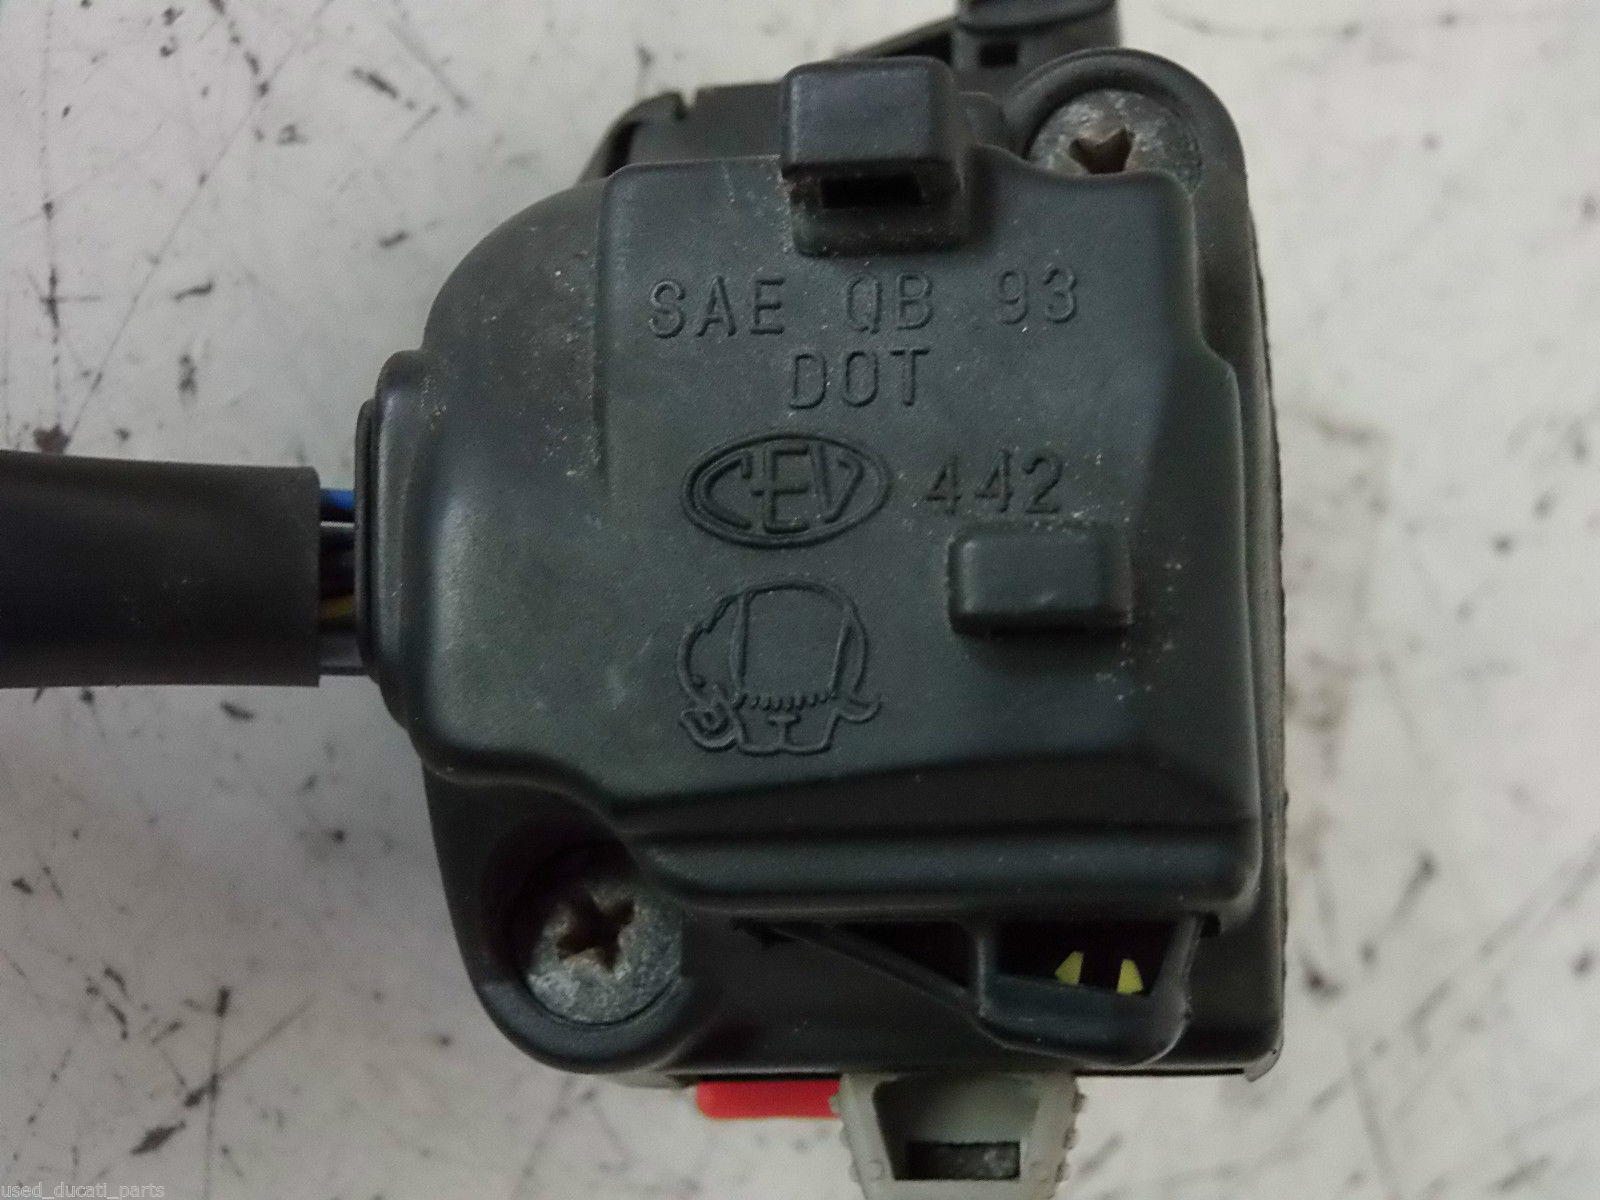 CEV 442 handlebar switch.